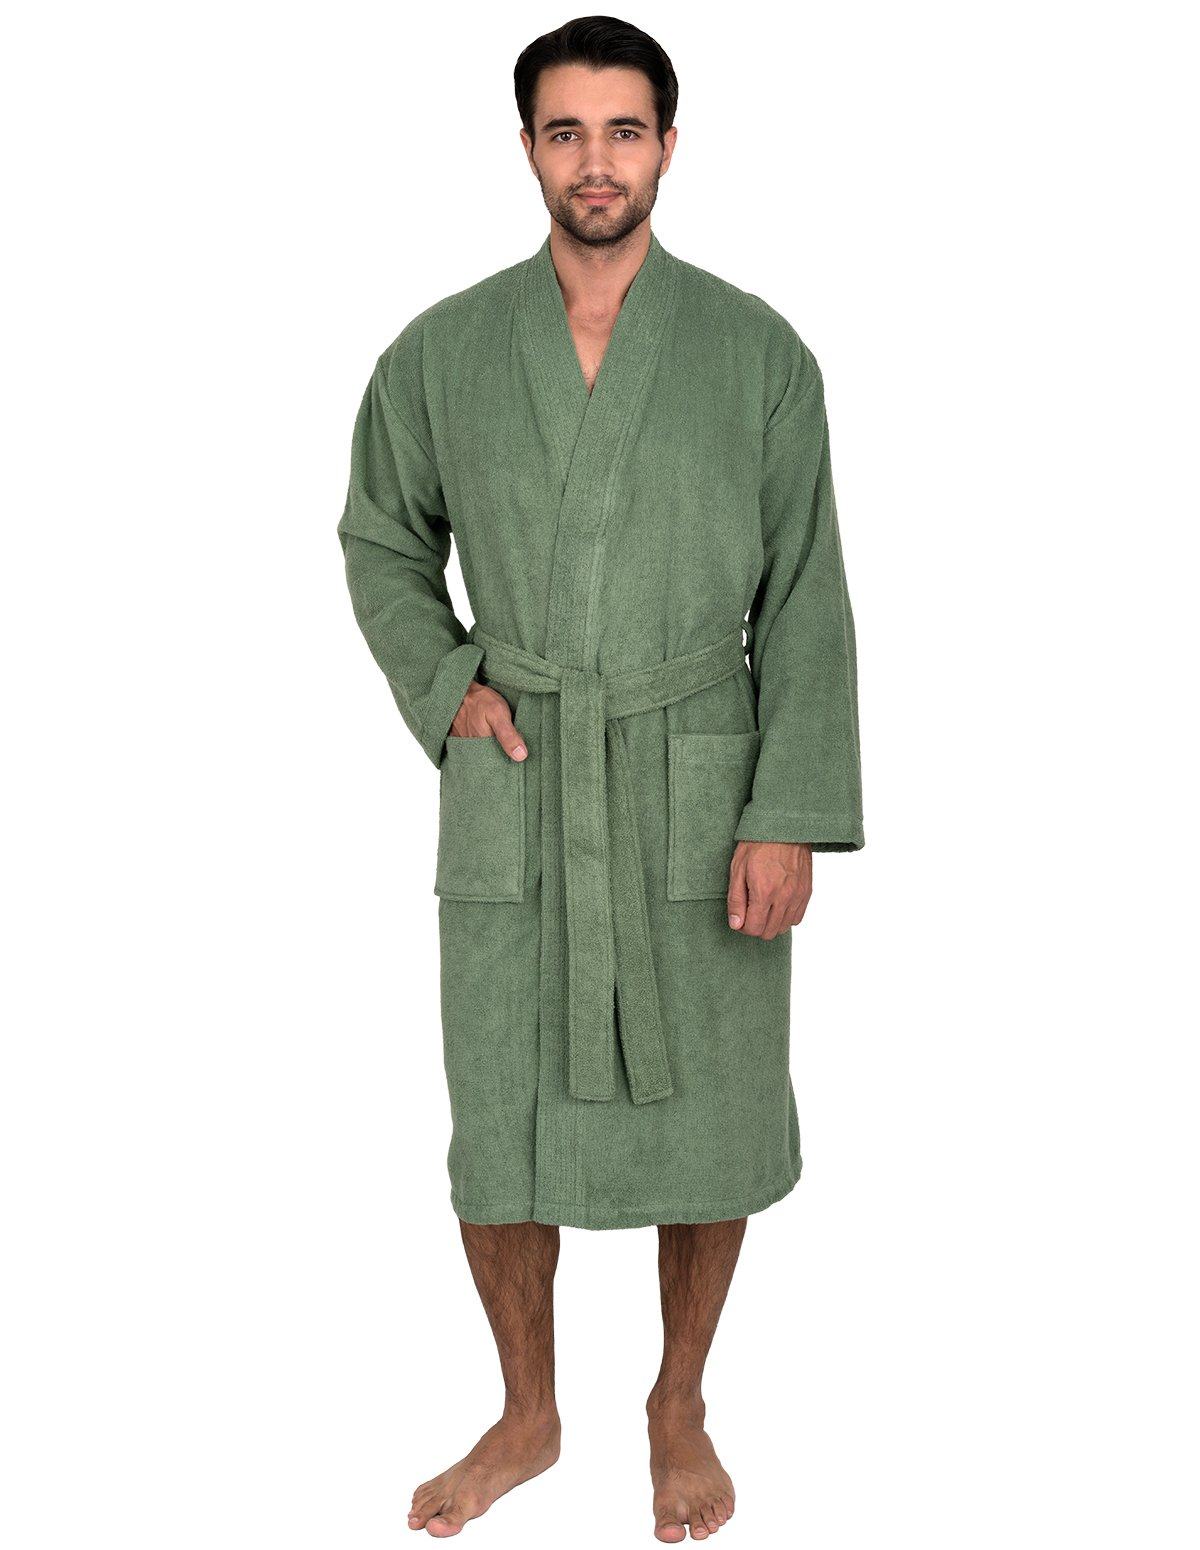 TowelSelections Men's Robe, Turkish Cotton Terry Kimono Bathrobe X-Large/XX-Large Loden Frost by TowelSelections (Image #1)